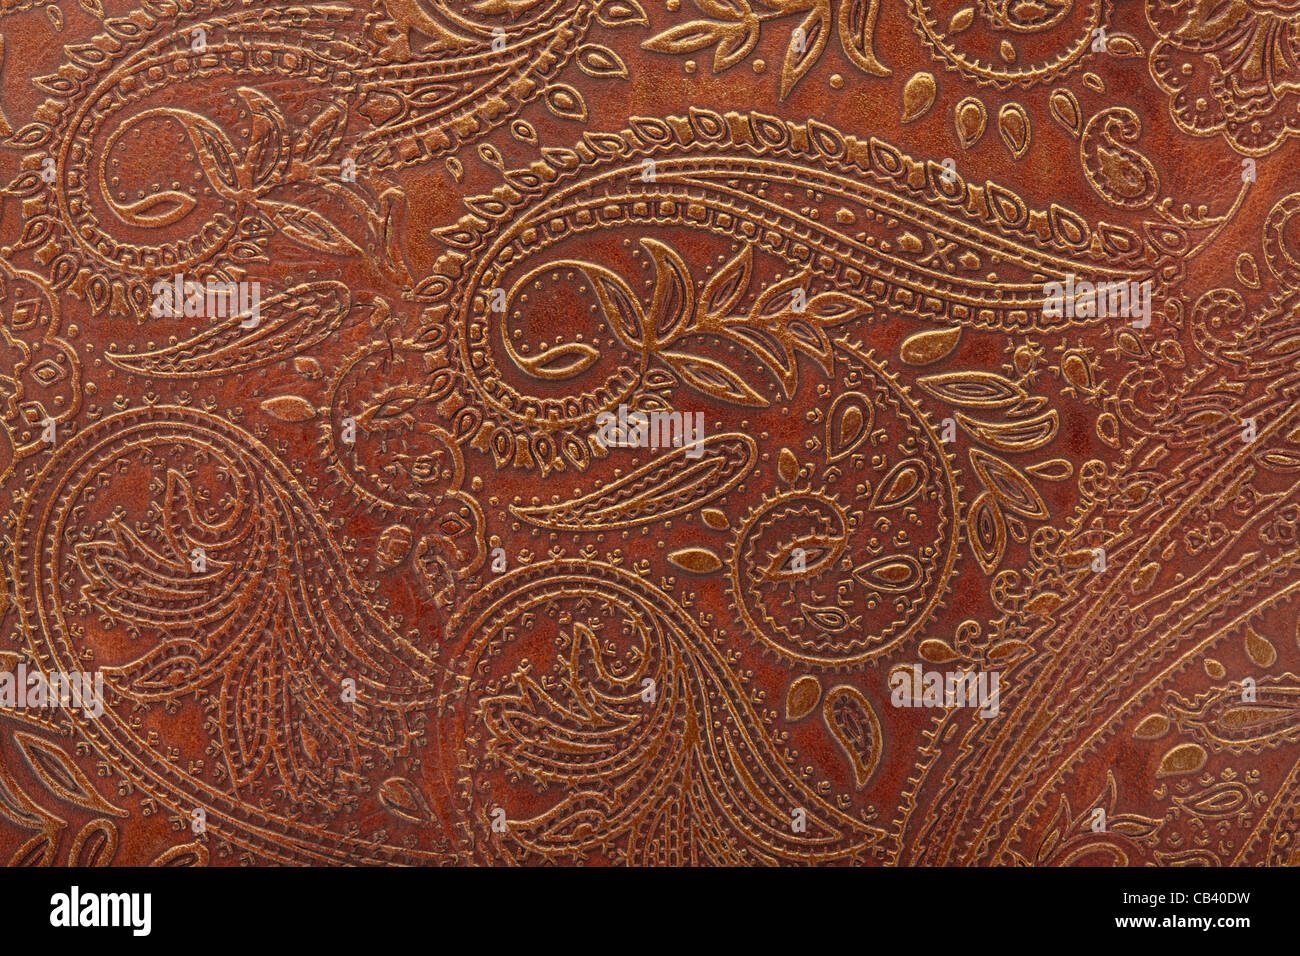 Tooled floral pattern in brown leather - Stock Image